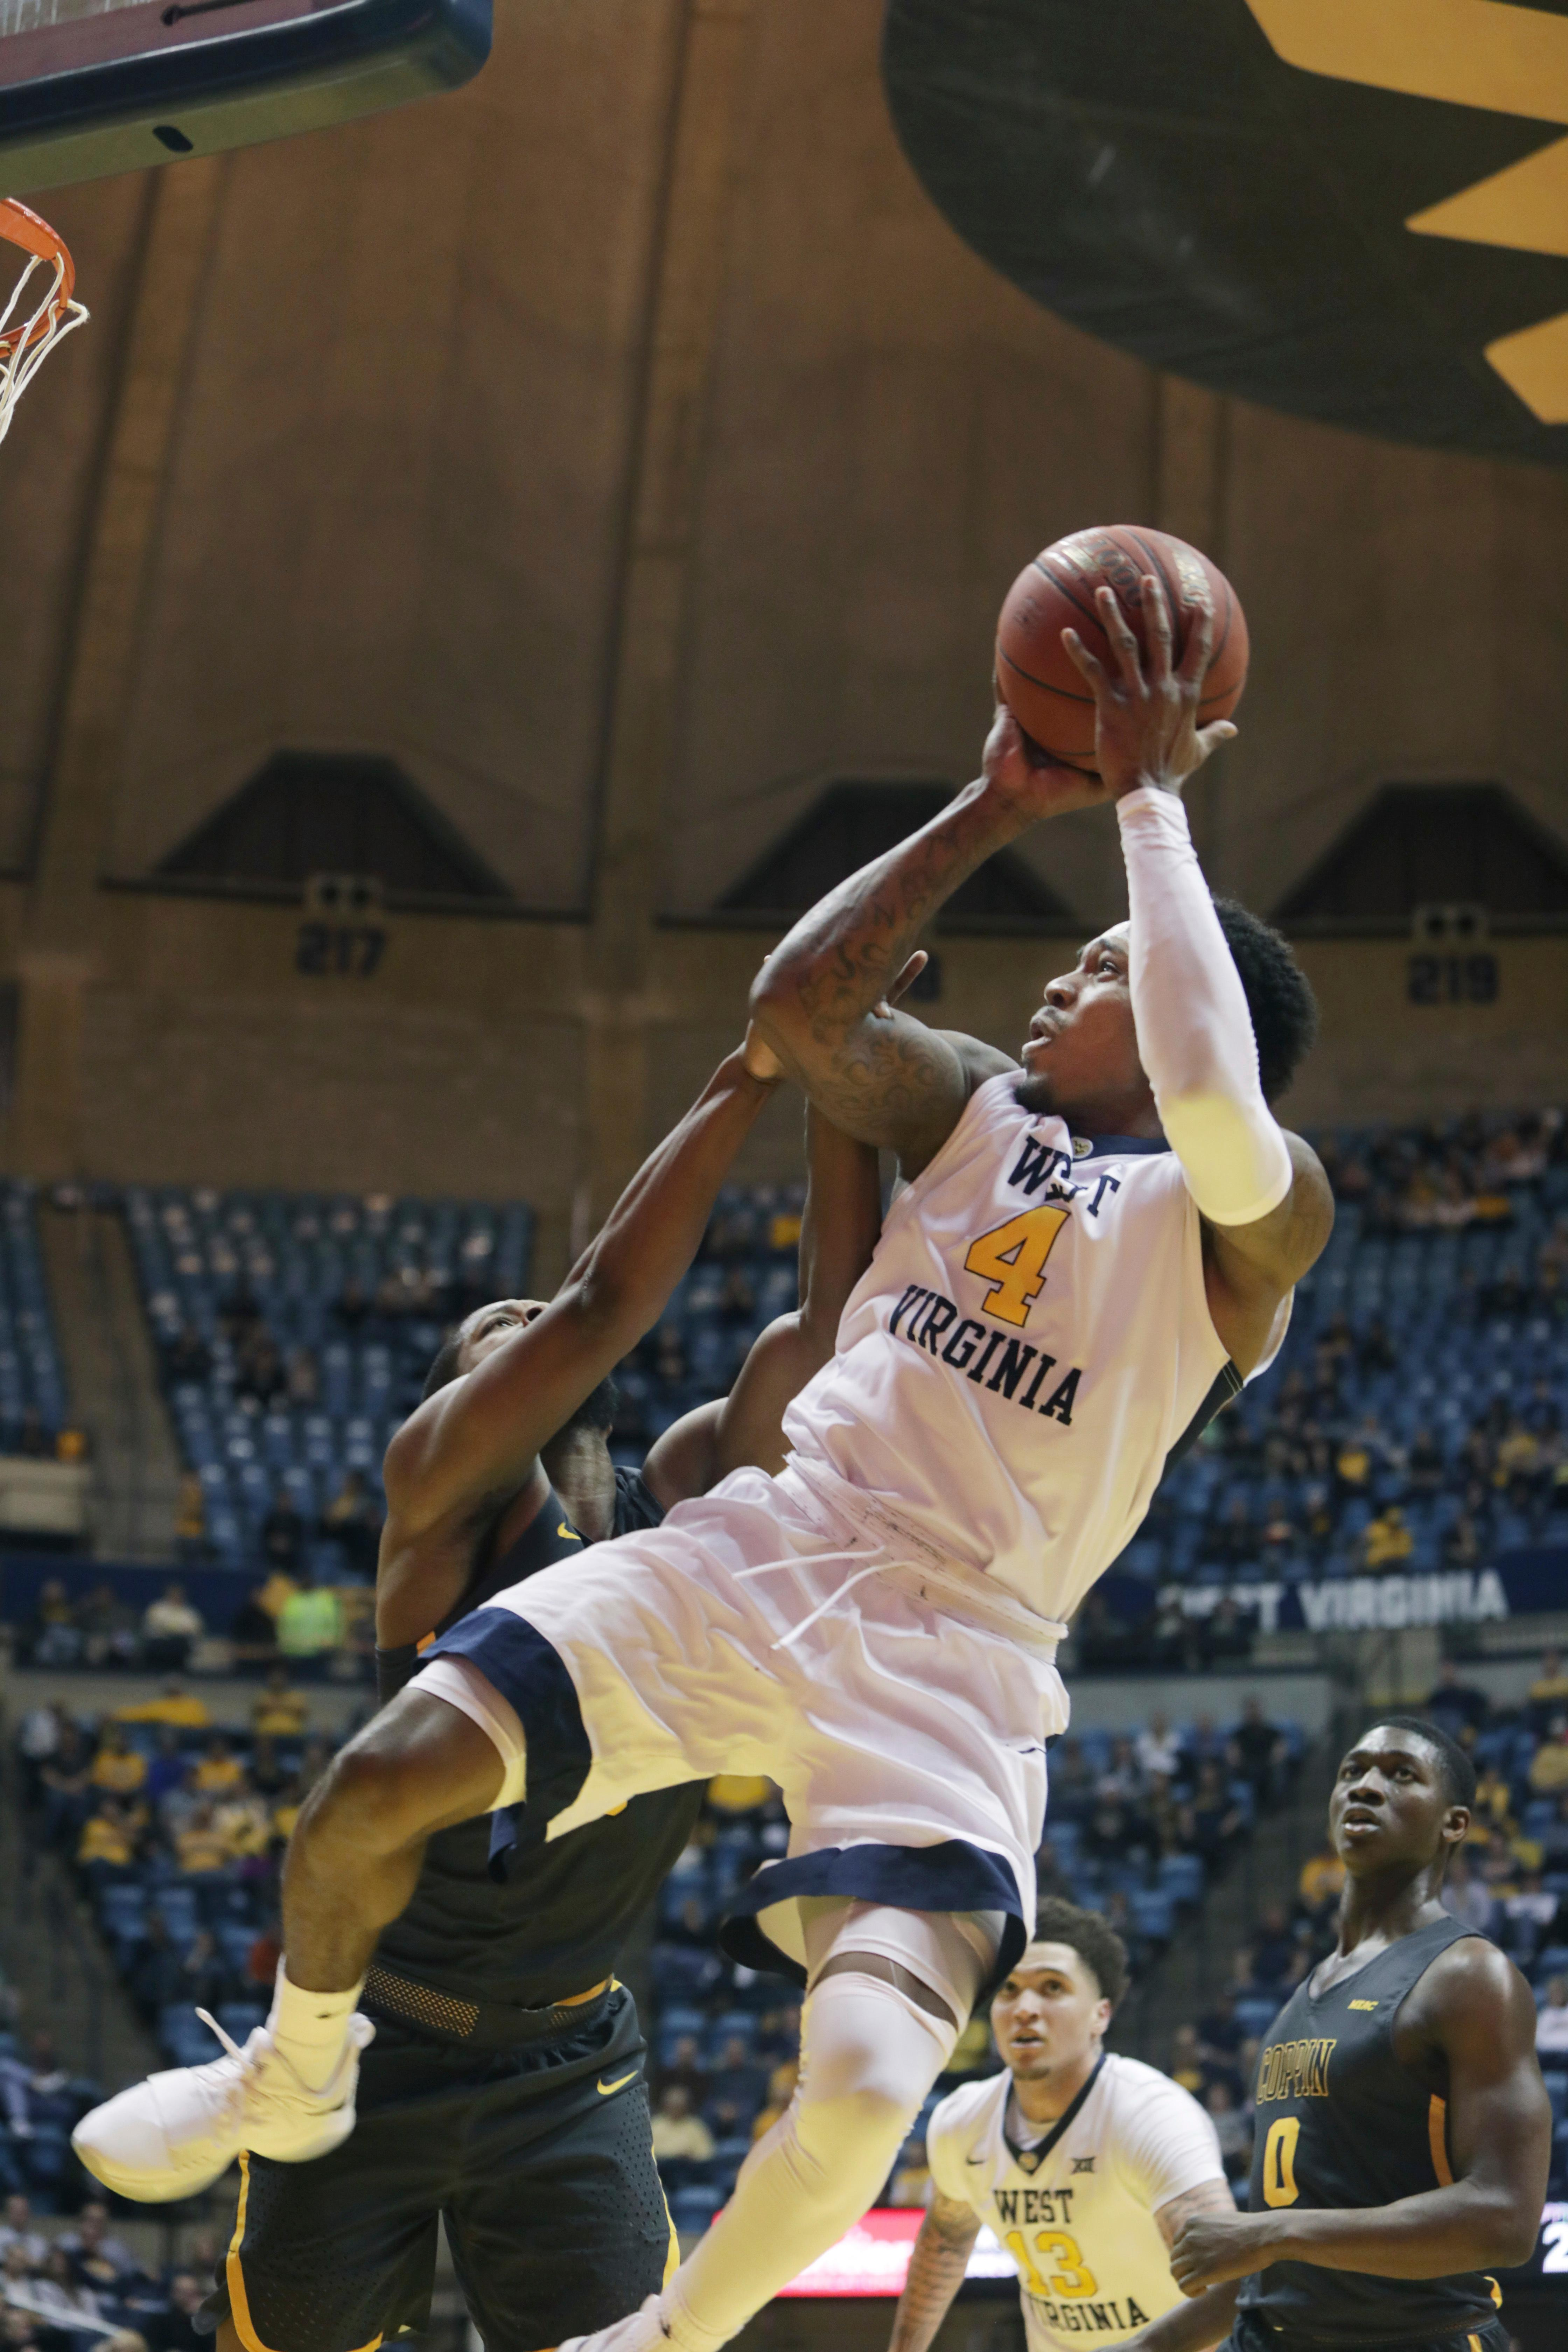 West Virginia guard Daxter Miles Jr. (4) is fouled by Coppin State guard Tre' Thomas (4) during the second half of an NCAA college basketball game Wednesday, Dec. 20, 2017, in Morgantown, W.Va. (AP Photo/Raymond Thompson)